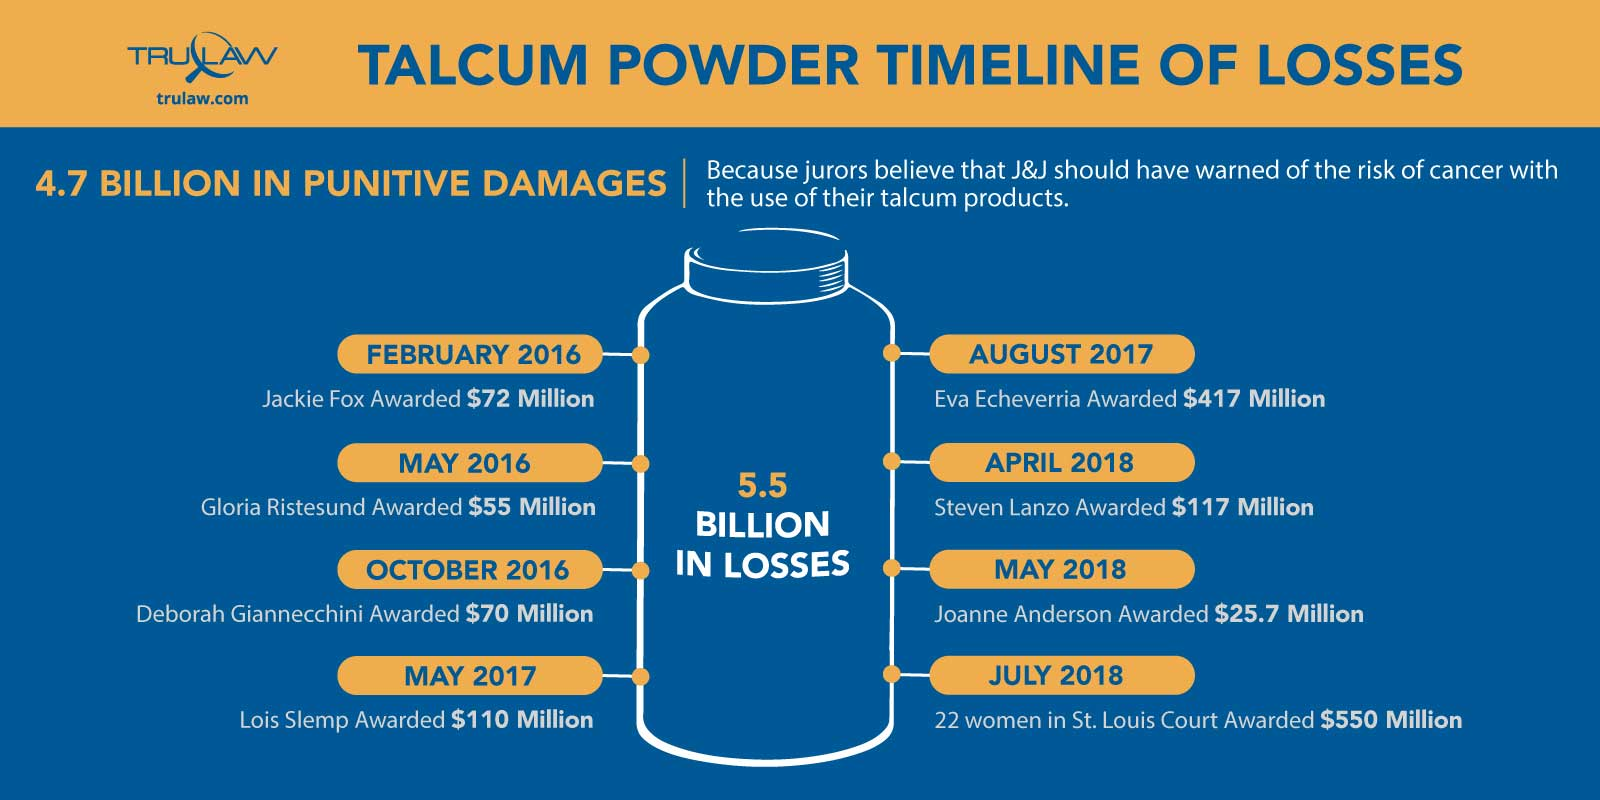 talcum powder timeline of losses infographic